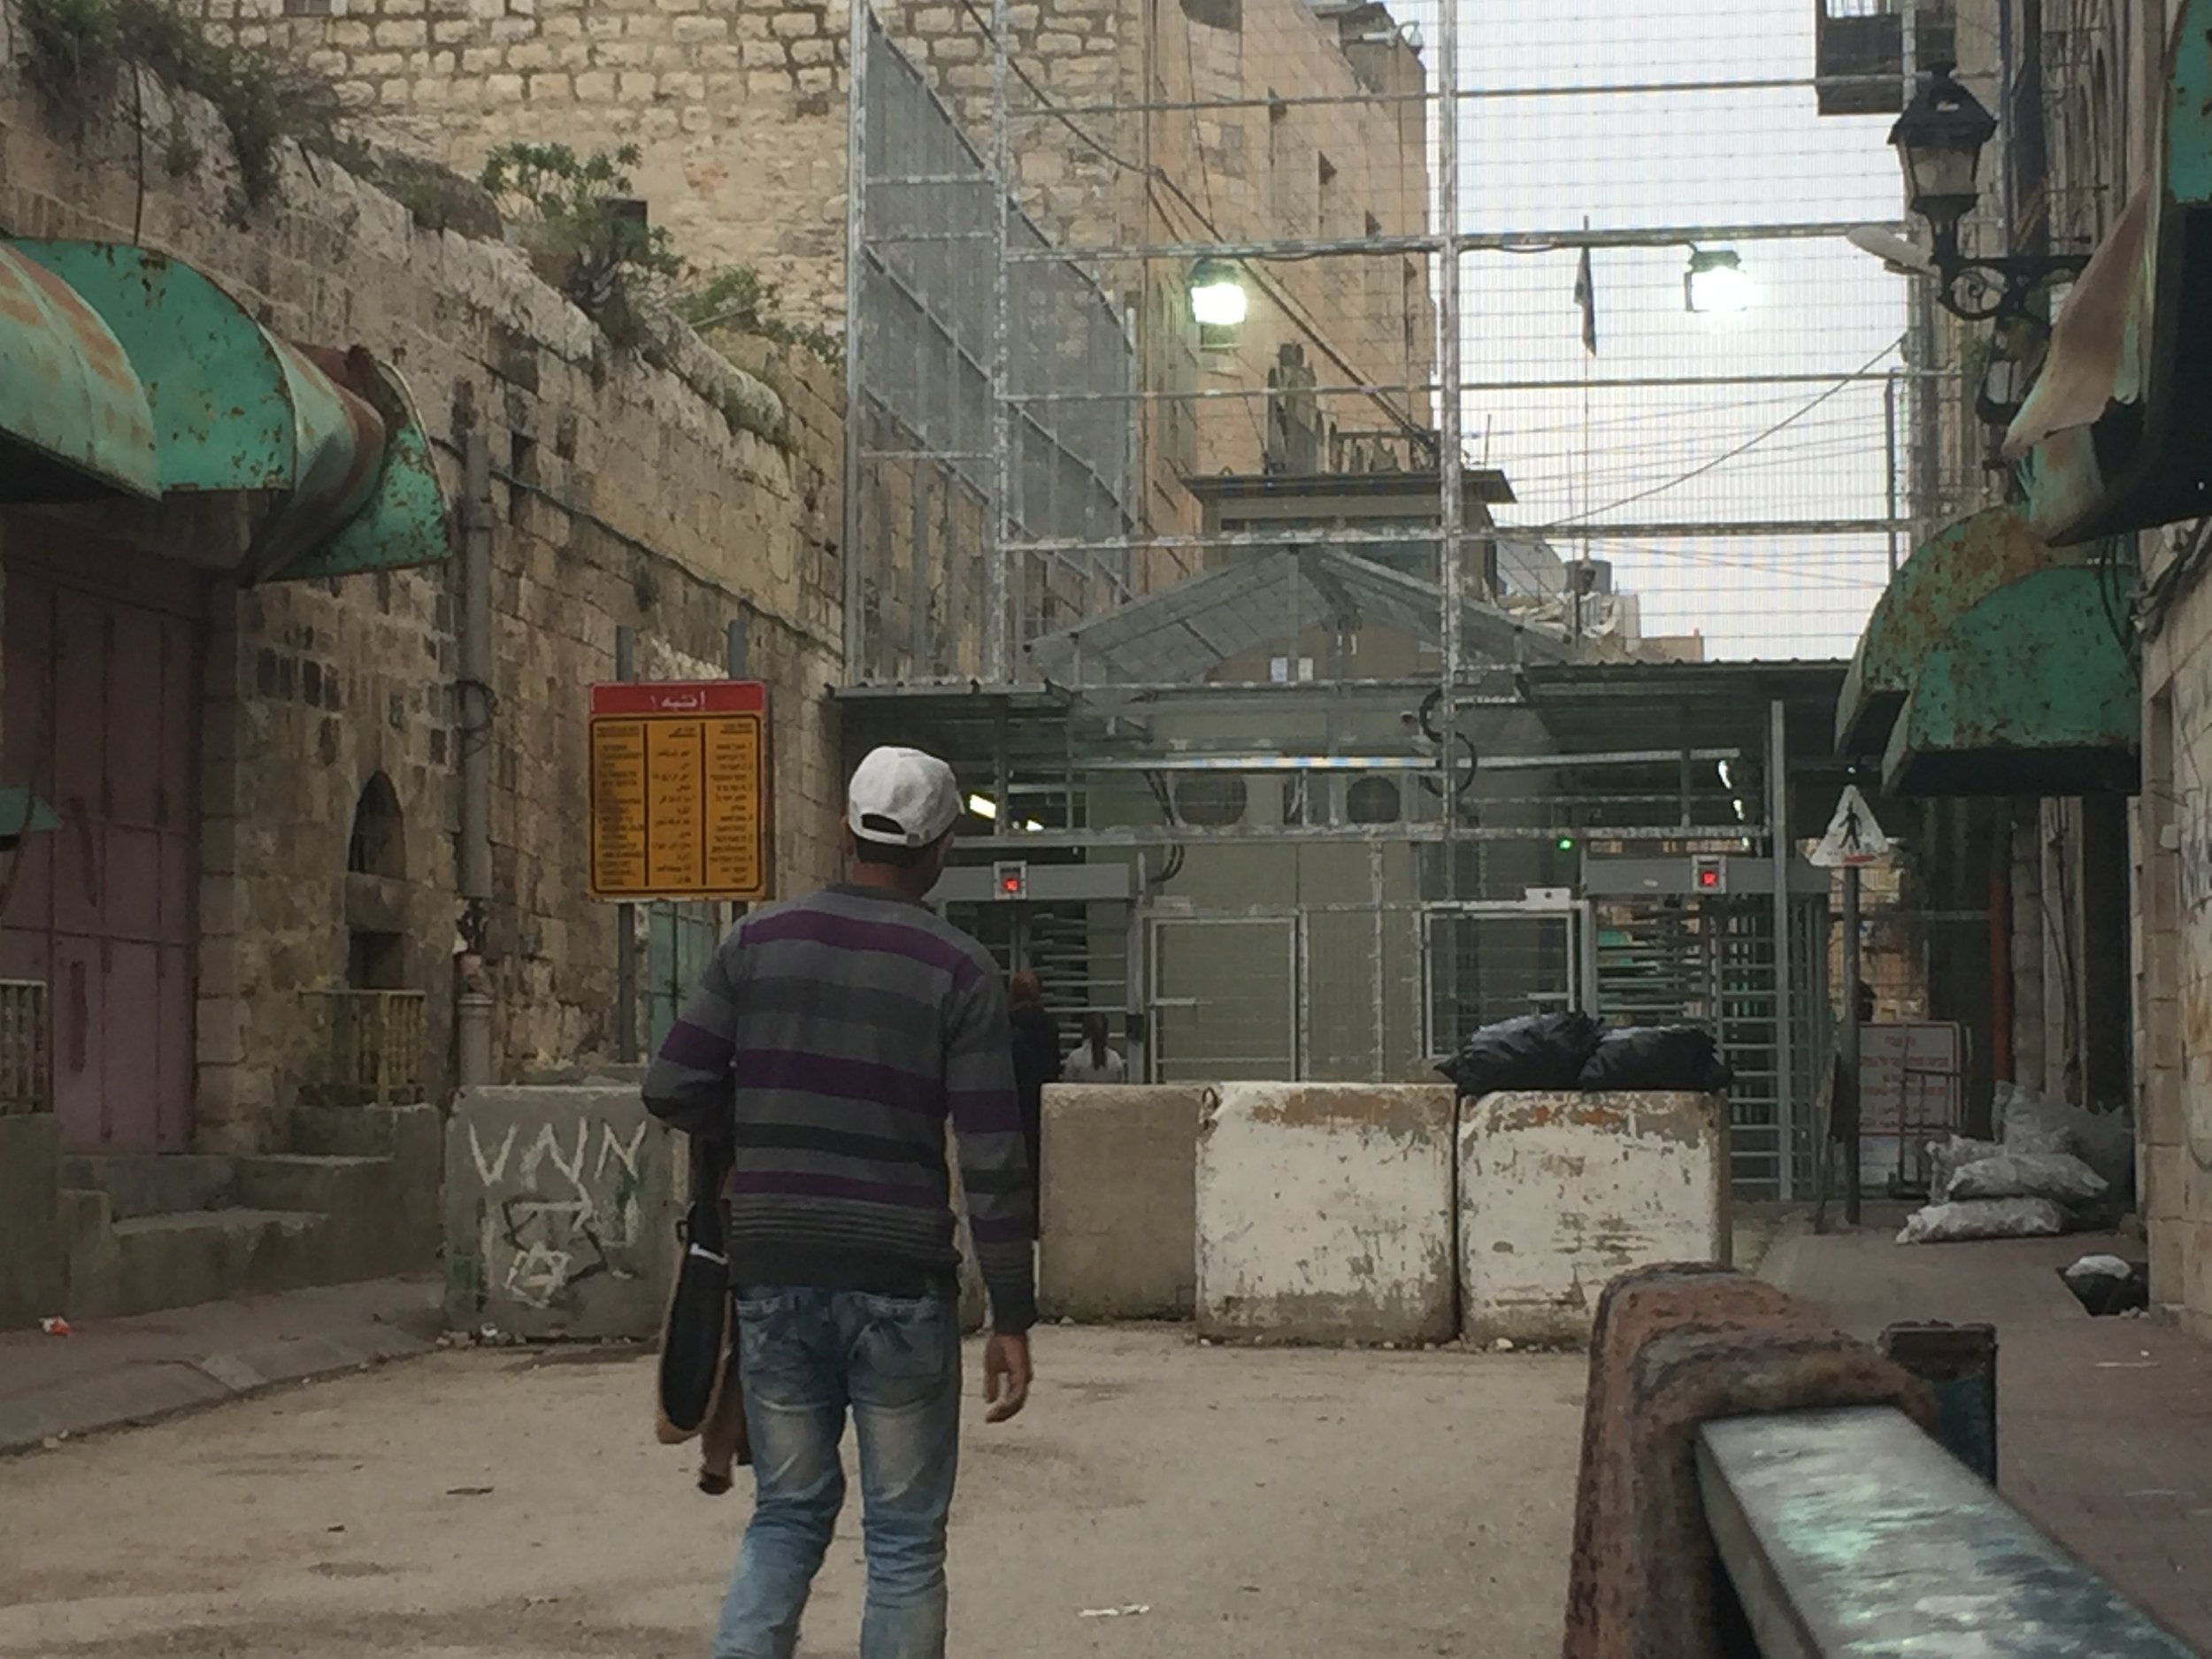 © Matthew Williams/The Conflict Archives: For a city which literally means 'friend' in Hebrew, Hebron has been associated with tragedy and its history is synonymous with the most poisonous elements of the Israeli-Palestinian conflict.